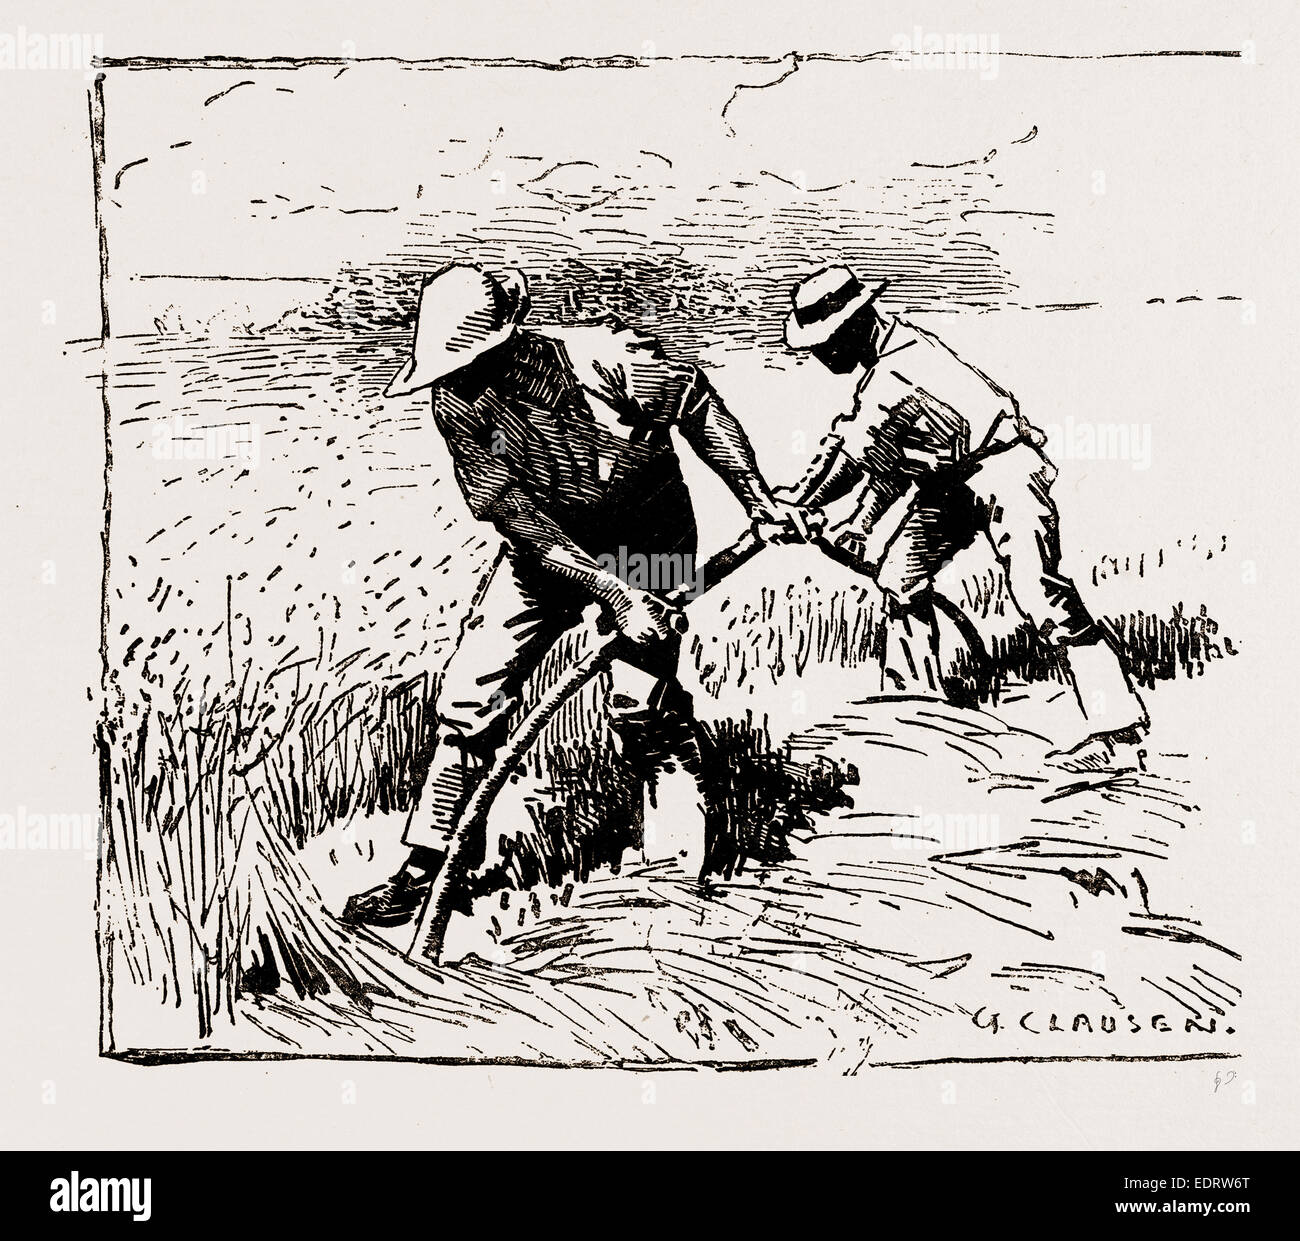 ILLUSTRATIONS FROM THE CATALOGUE OF THE ROYAL INSTITUTE OF PAINTERS IN WATER COLOURS, 1886: MOWERS, By George Clausen, - Stock Image